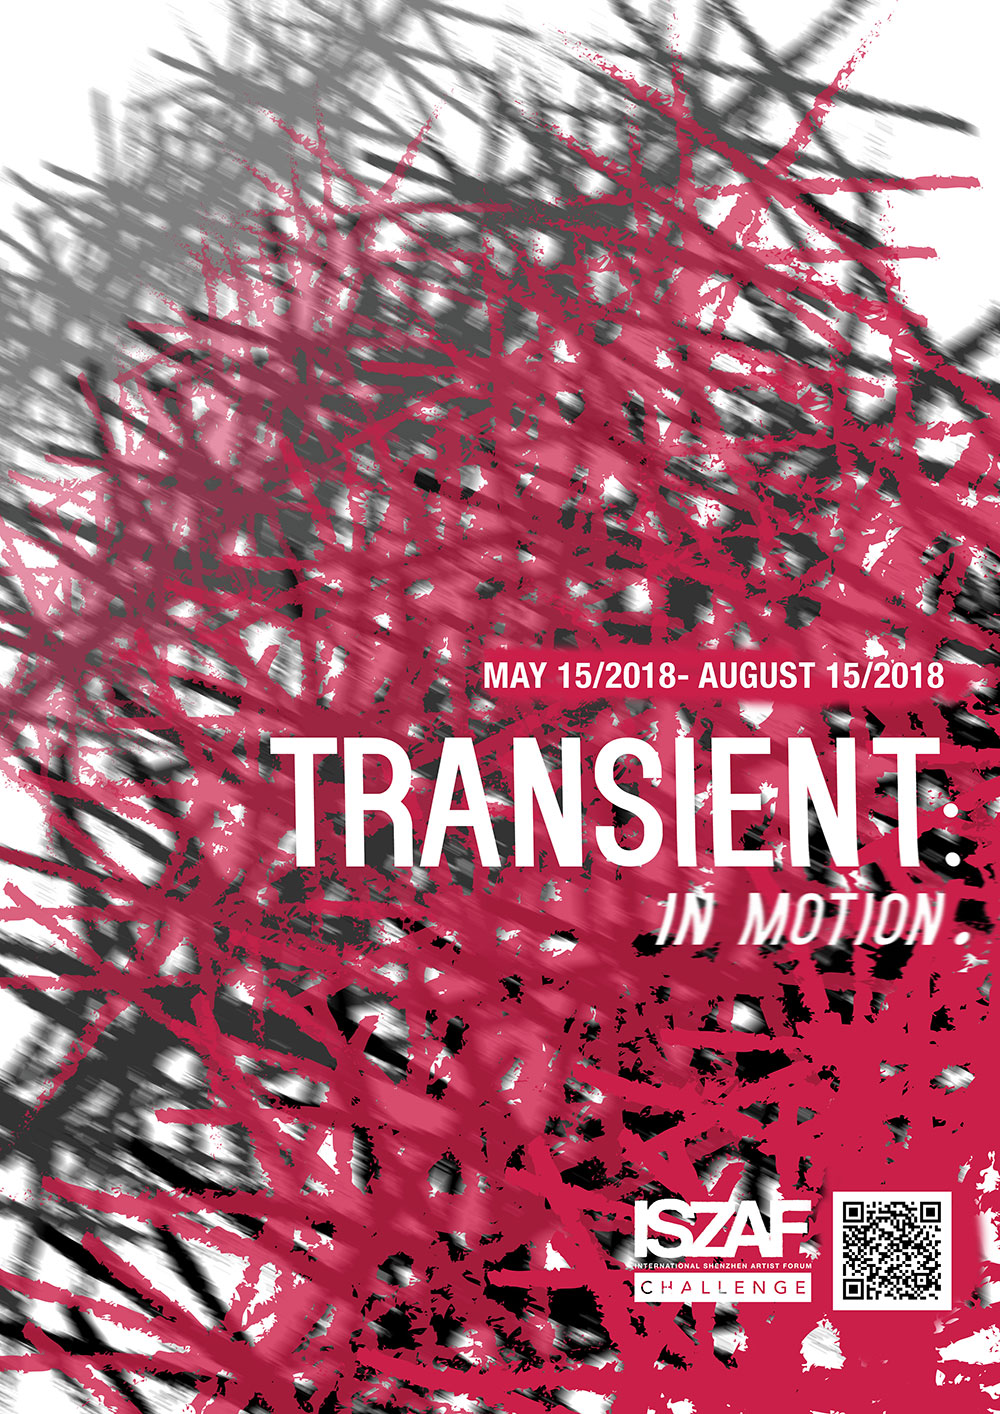 Transient: In Motion - ISZAF Challenge Poster. 2018.